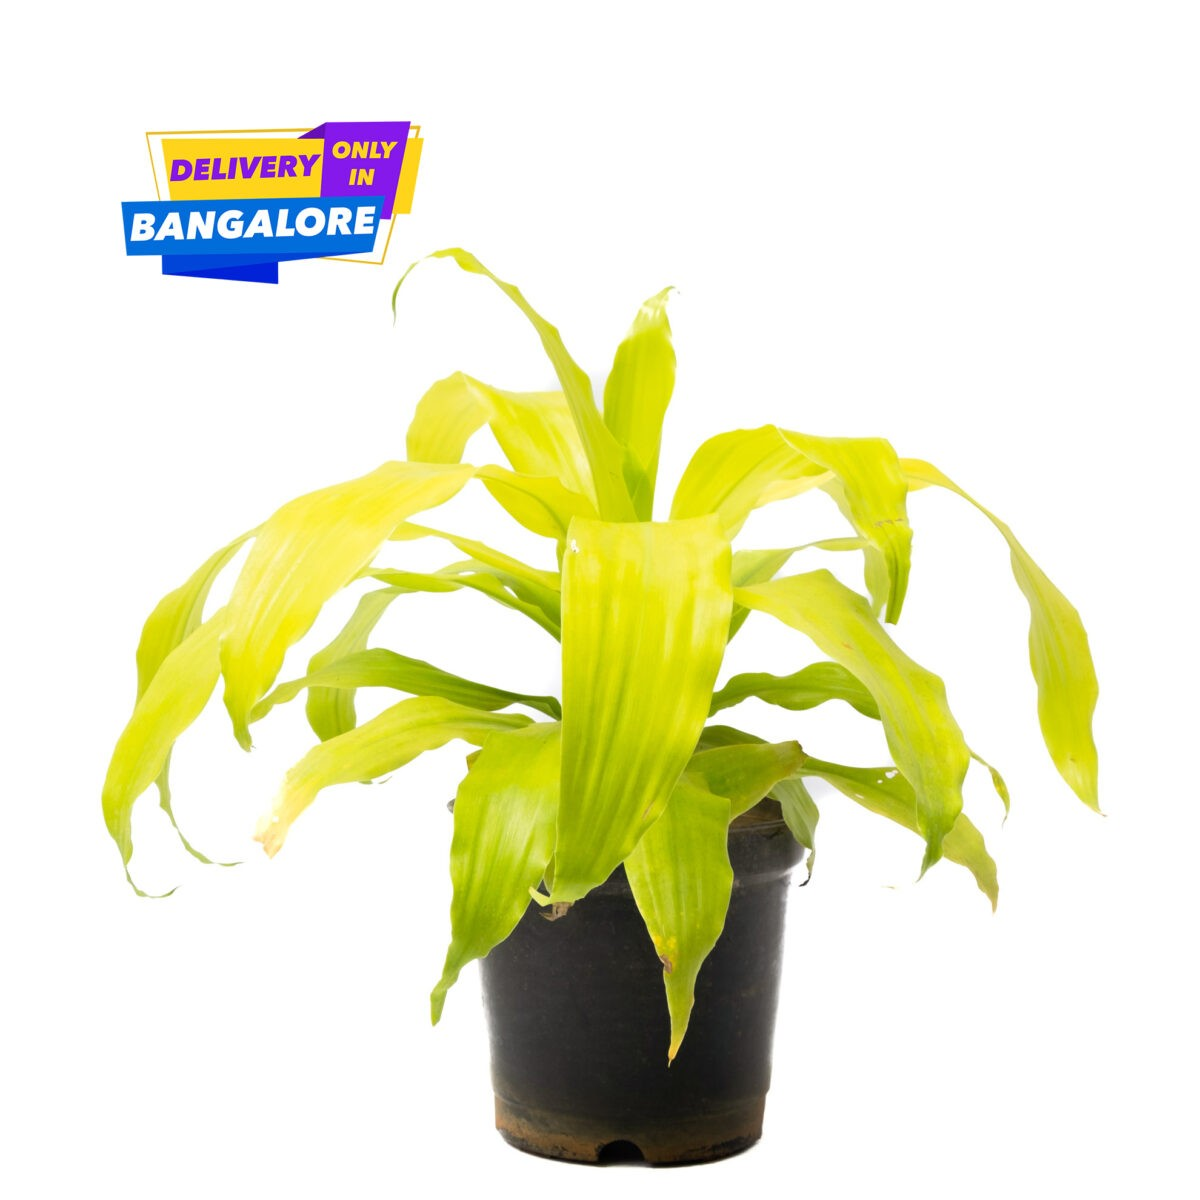 Dracaena Limelight, air purifier plant, green and yellow long leaves are low maintainence plants. Available only in Bangalore delivery